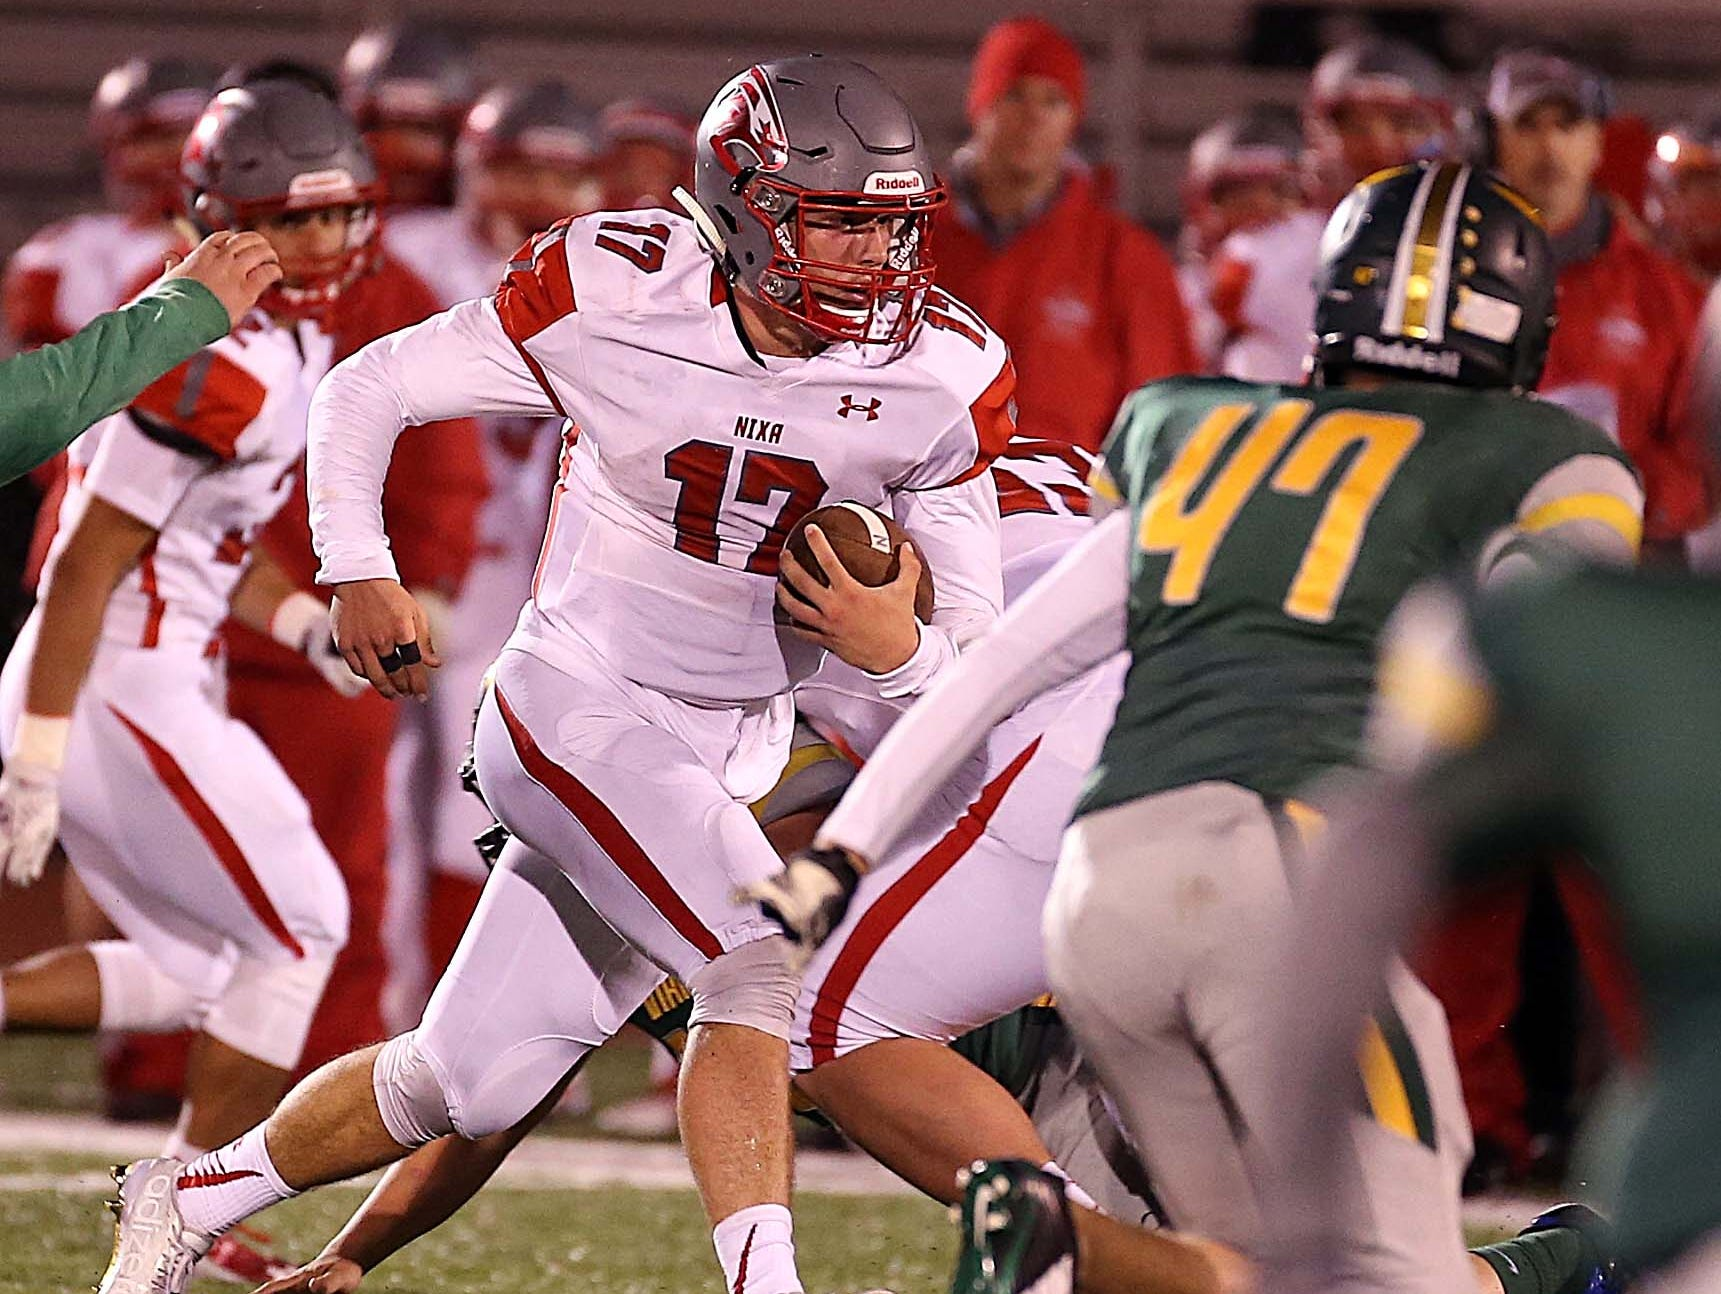 Nixa's Logan Tyler gains a first down during his team's visit to Parkview on October 30, 2015.